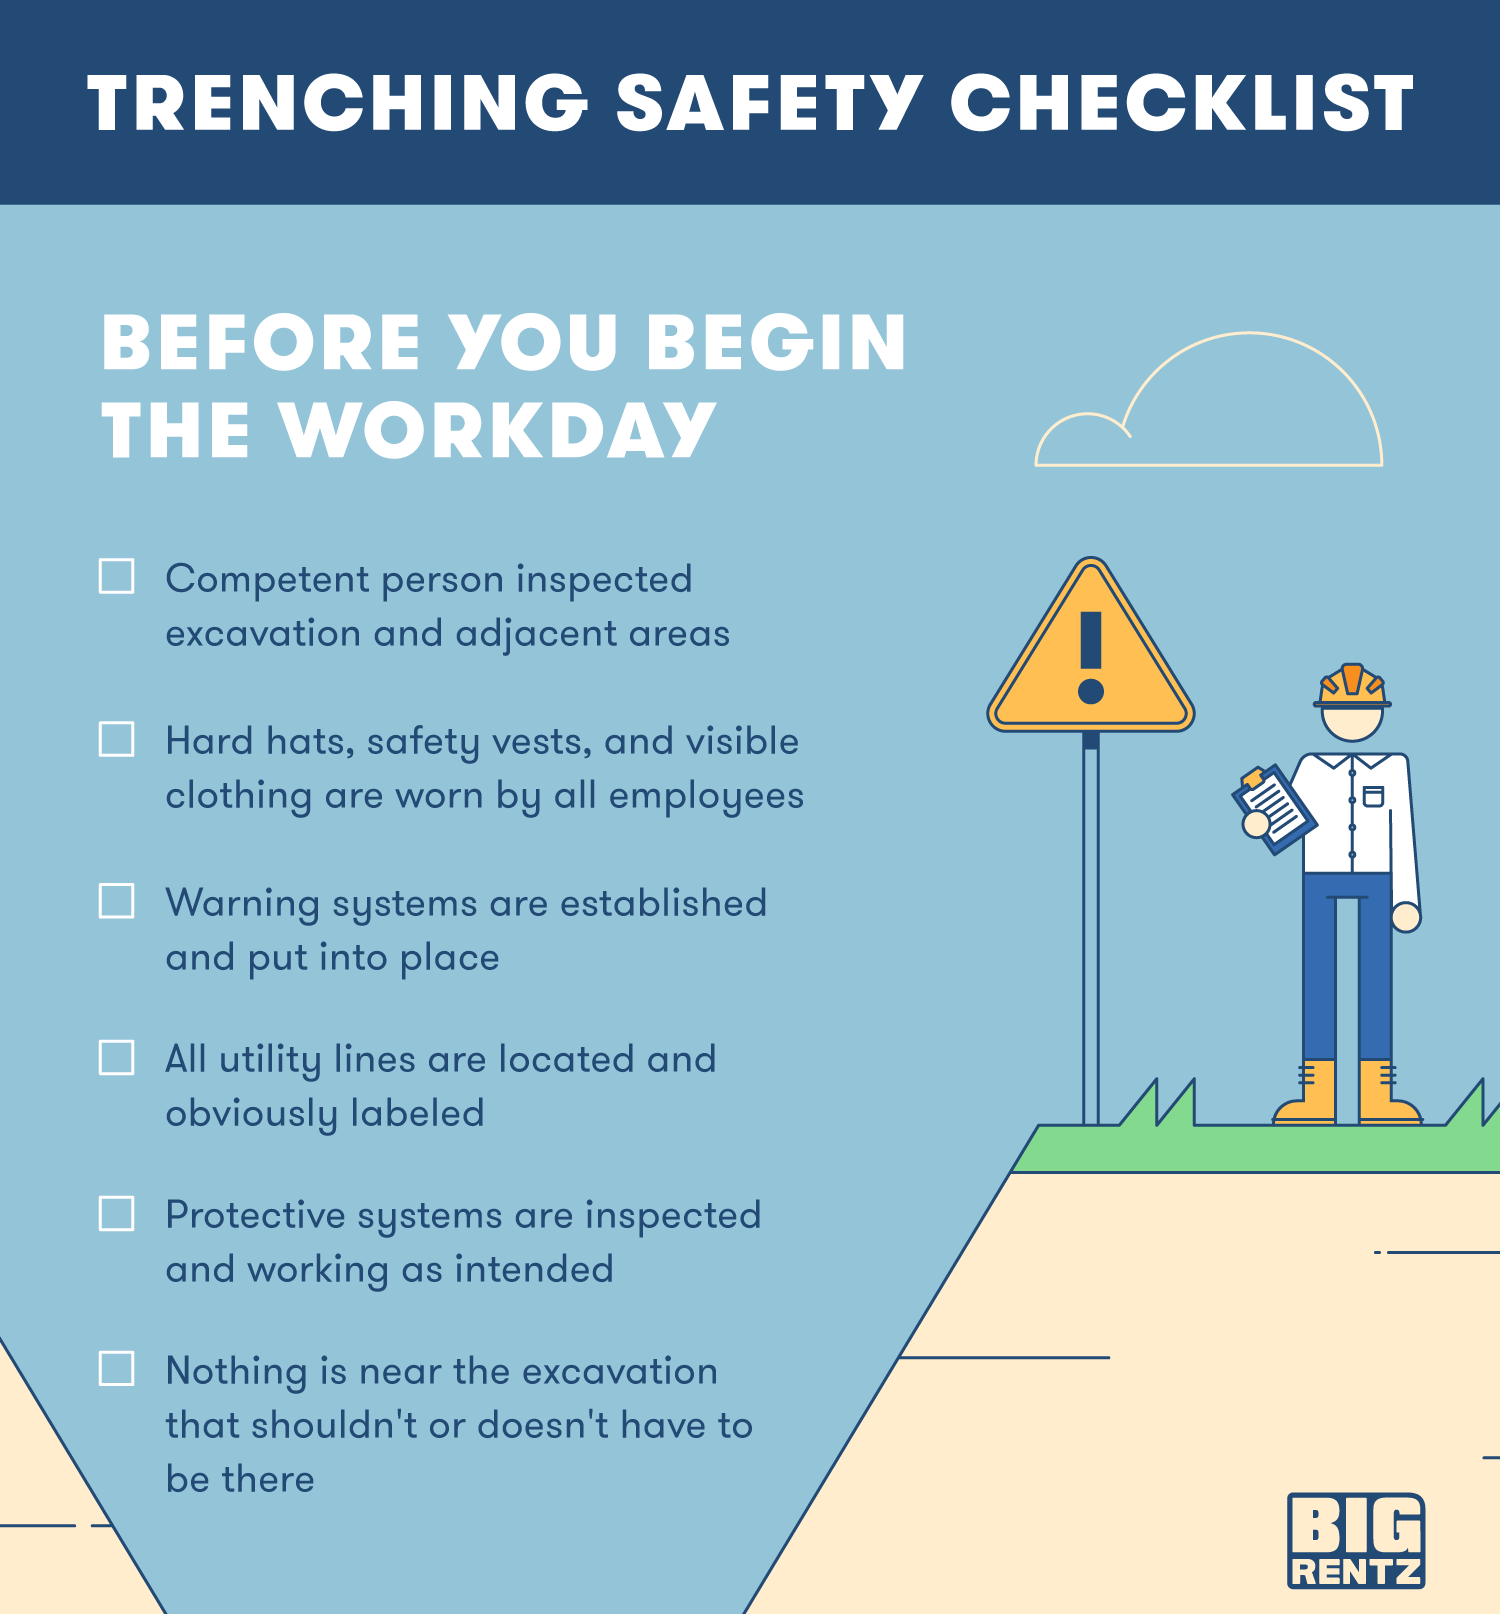 The 10 Trenching Safety Tips That Can Save A Life Bigrentz